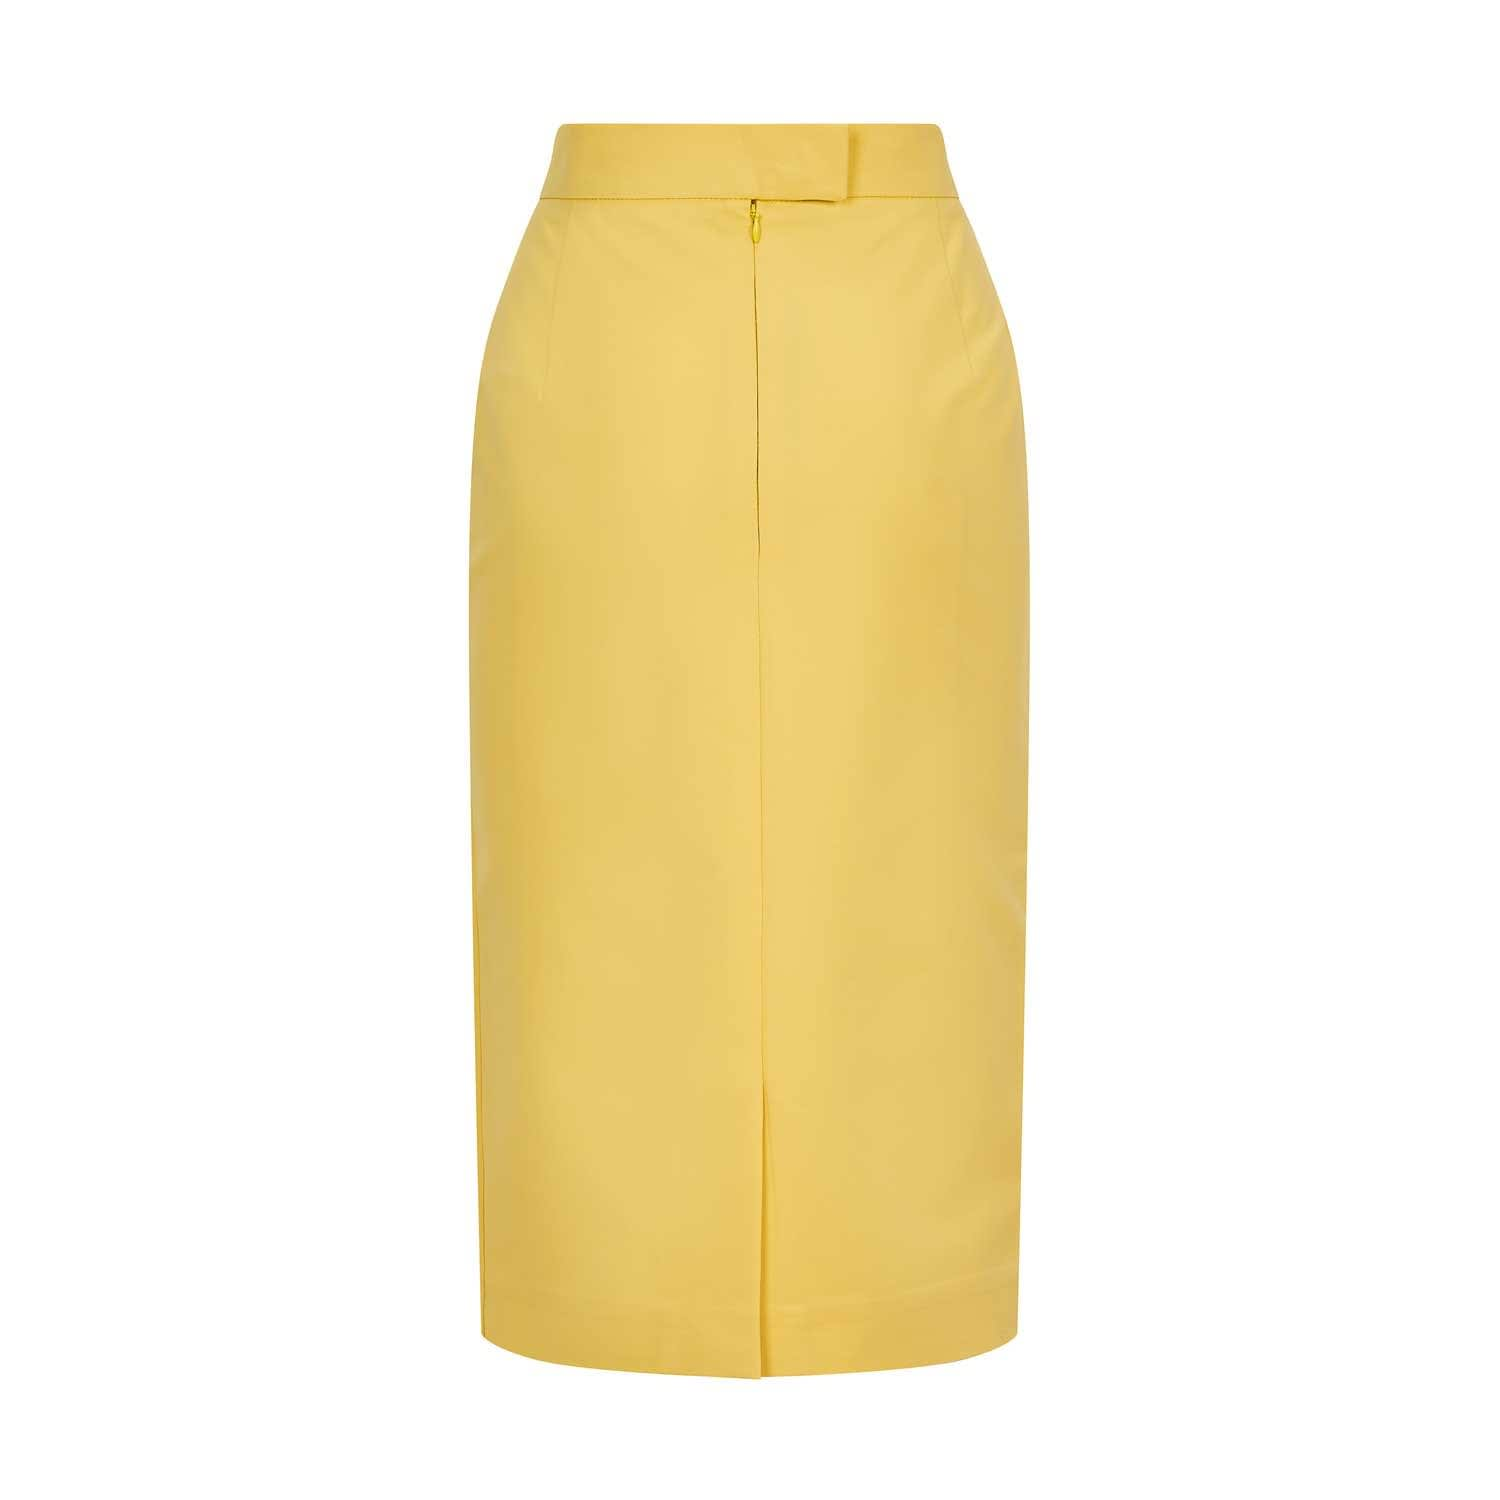 Now Your Compassion Has A Colour Compassion Coloured White Form Fitting Pencil Skirt